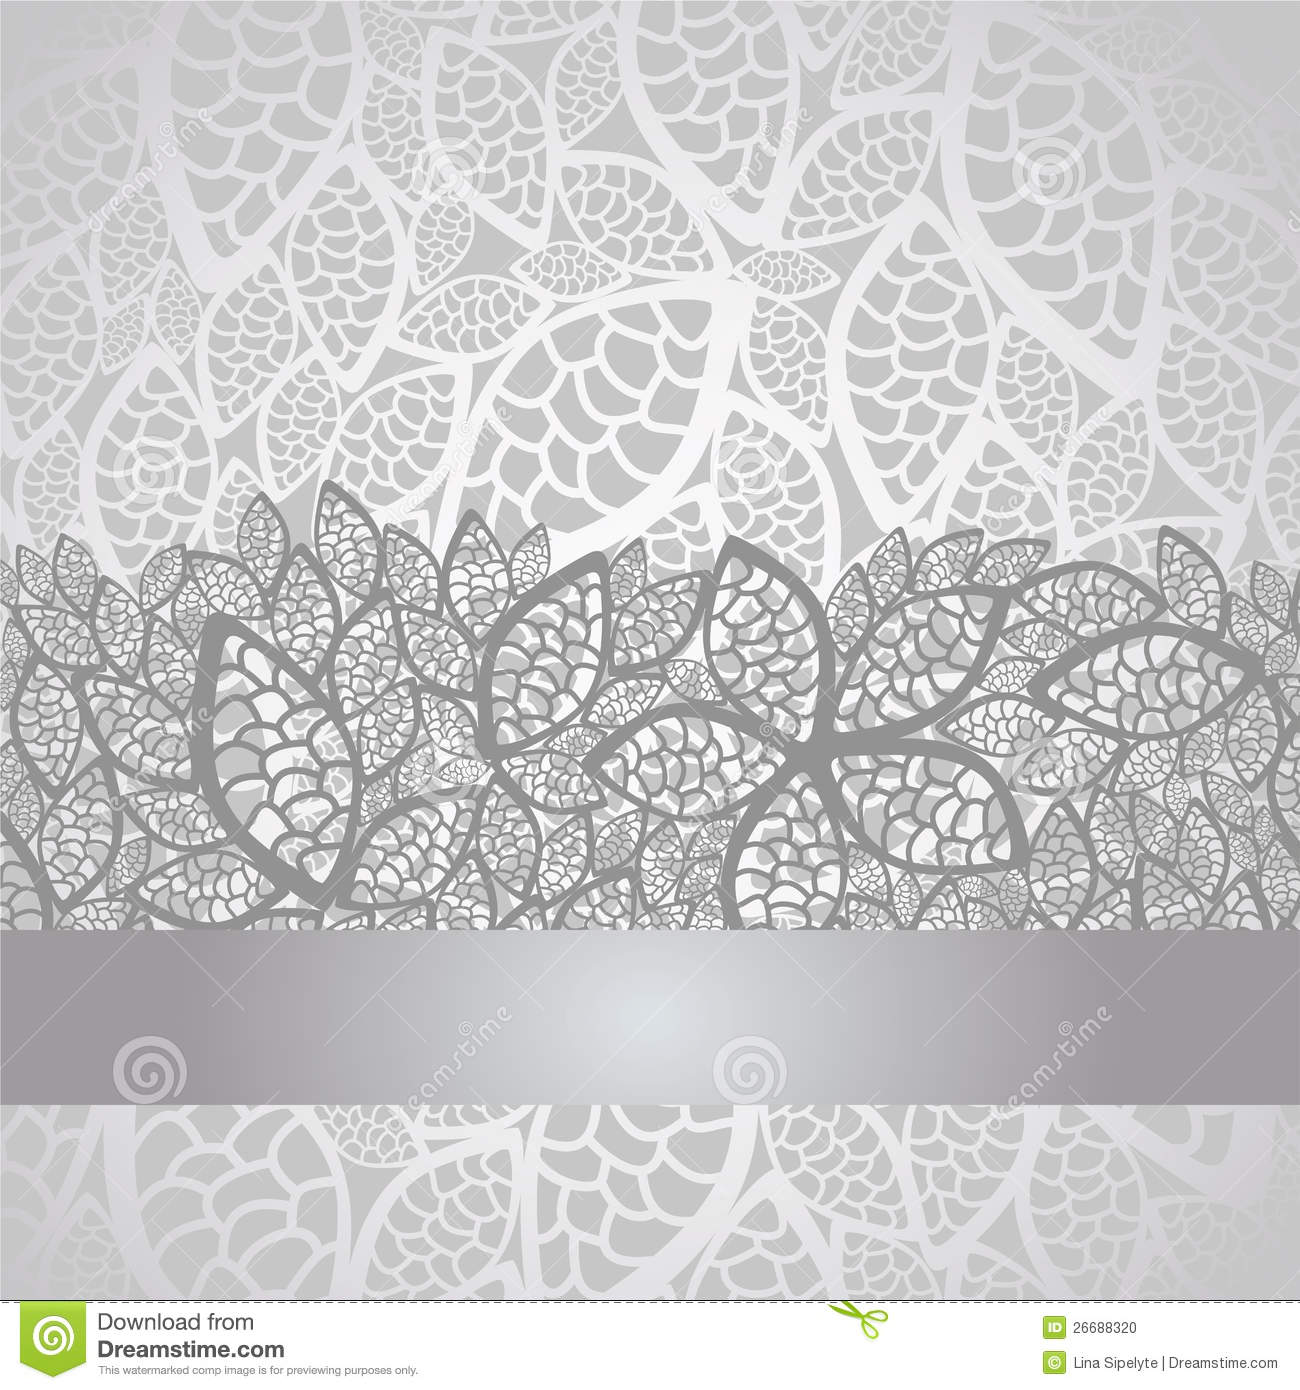 Free Download Pin Silver Lace Wallpapers Hd Images 1300x1390 For